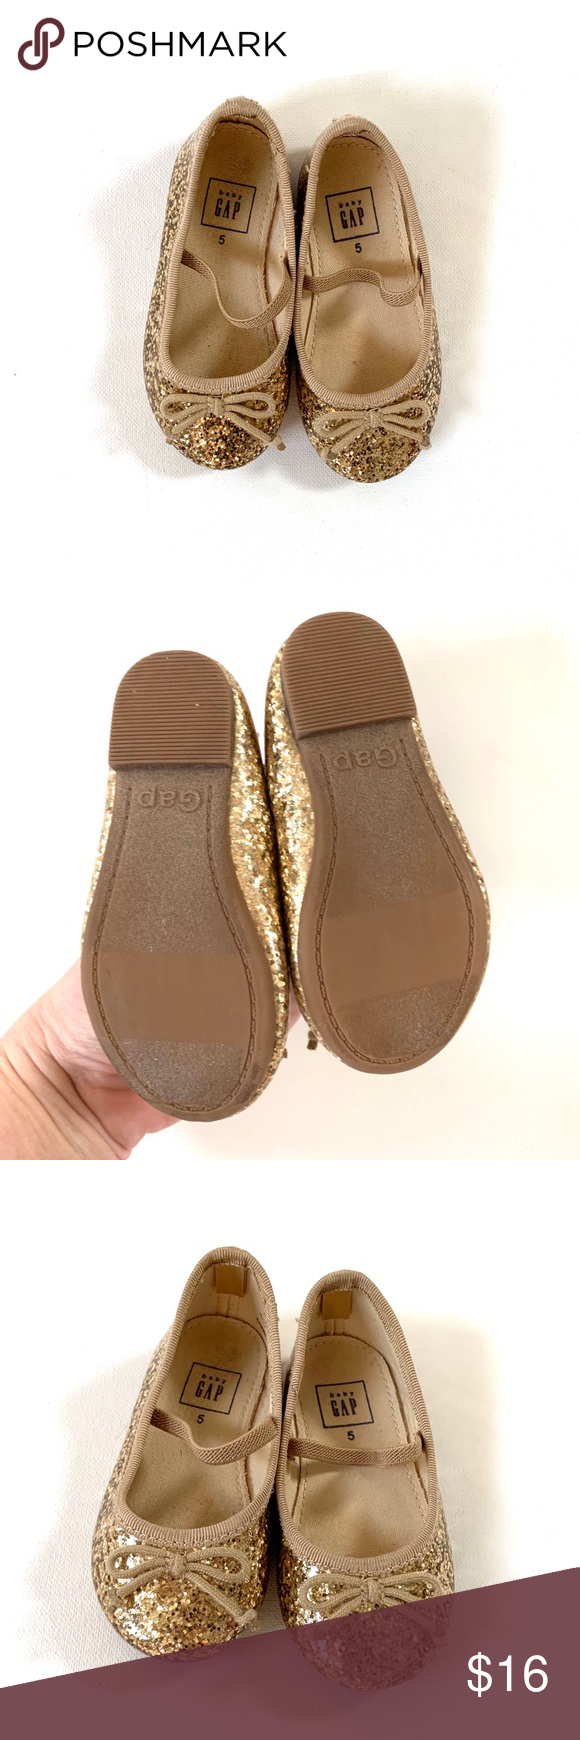 Baby GAP Toddler Girl Gold Glitter Shoes Fun And